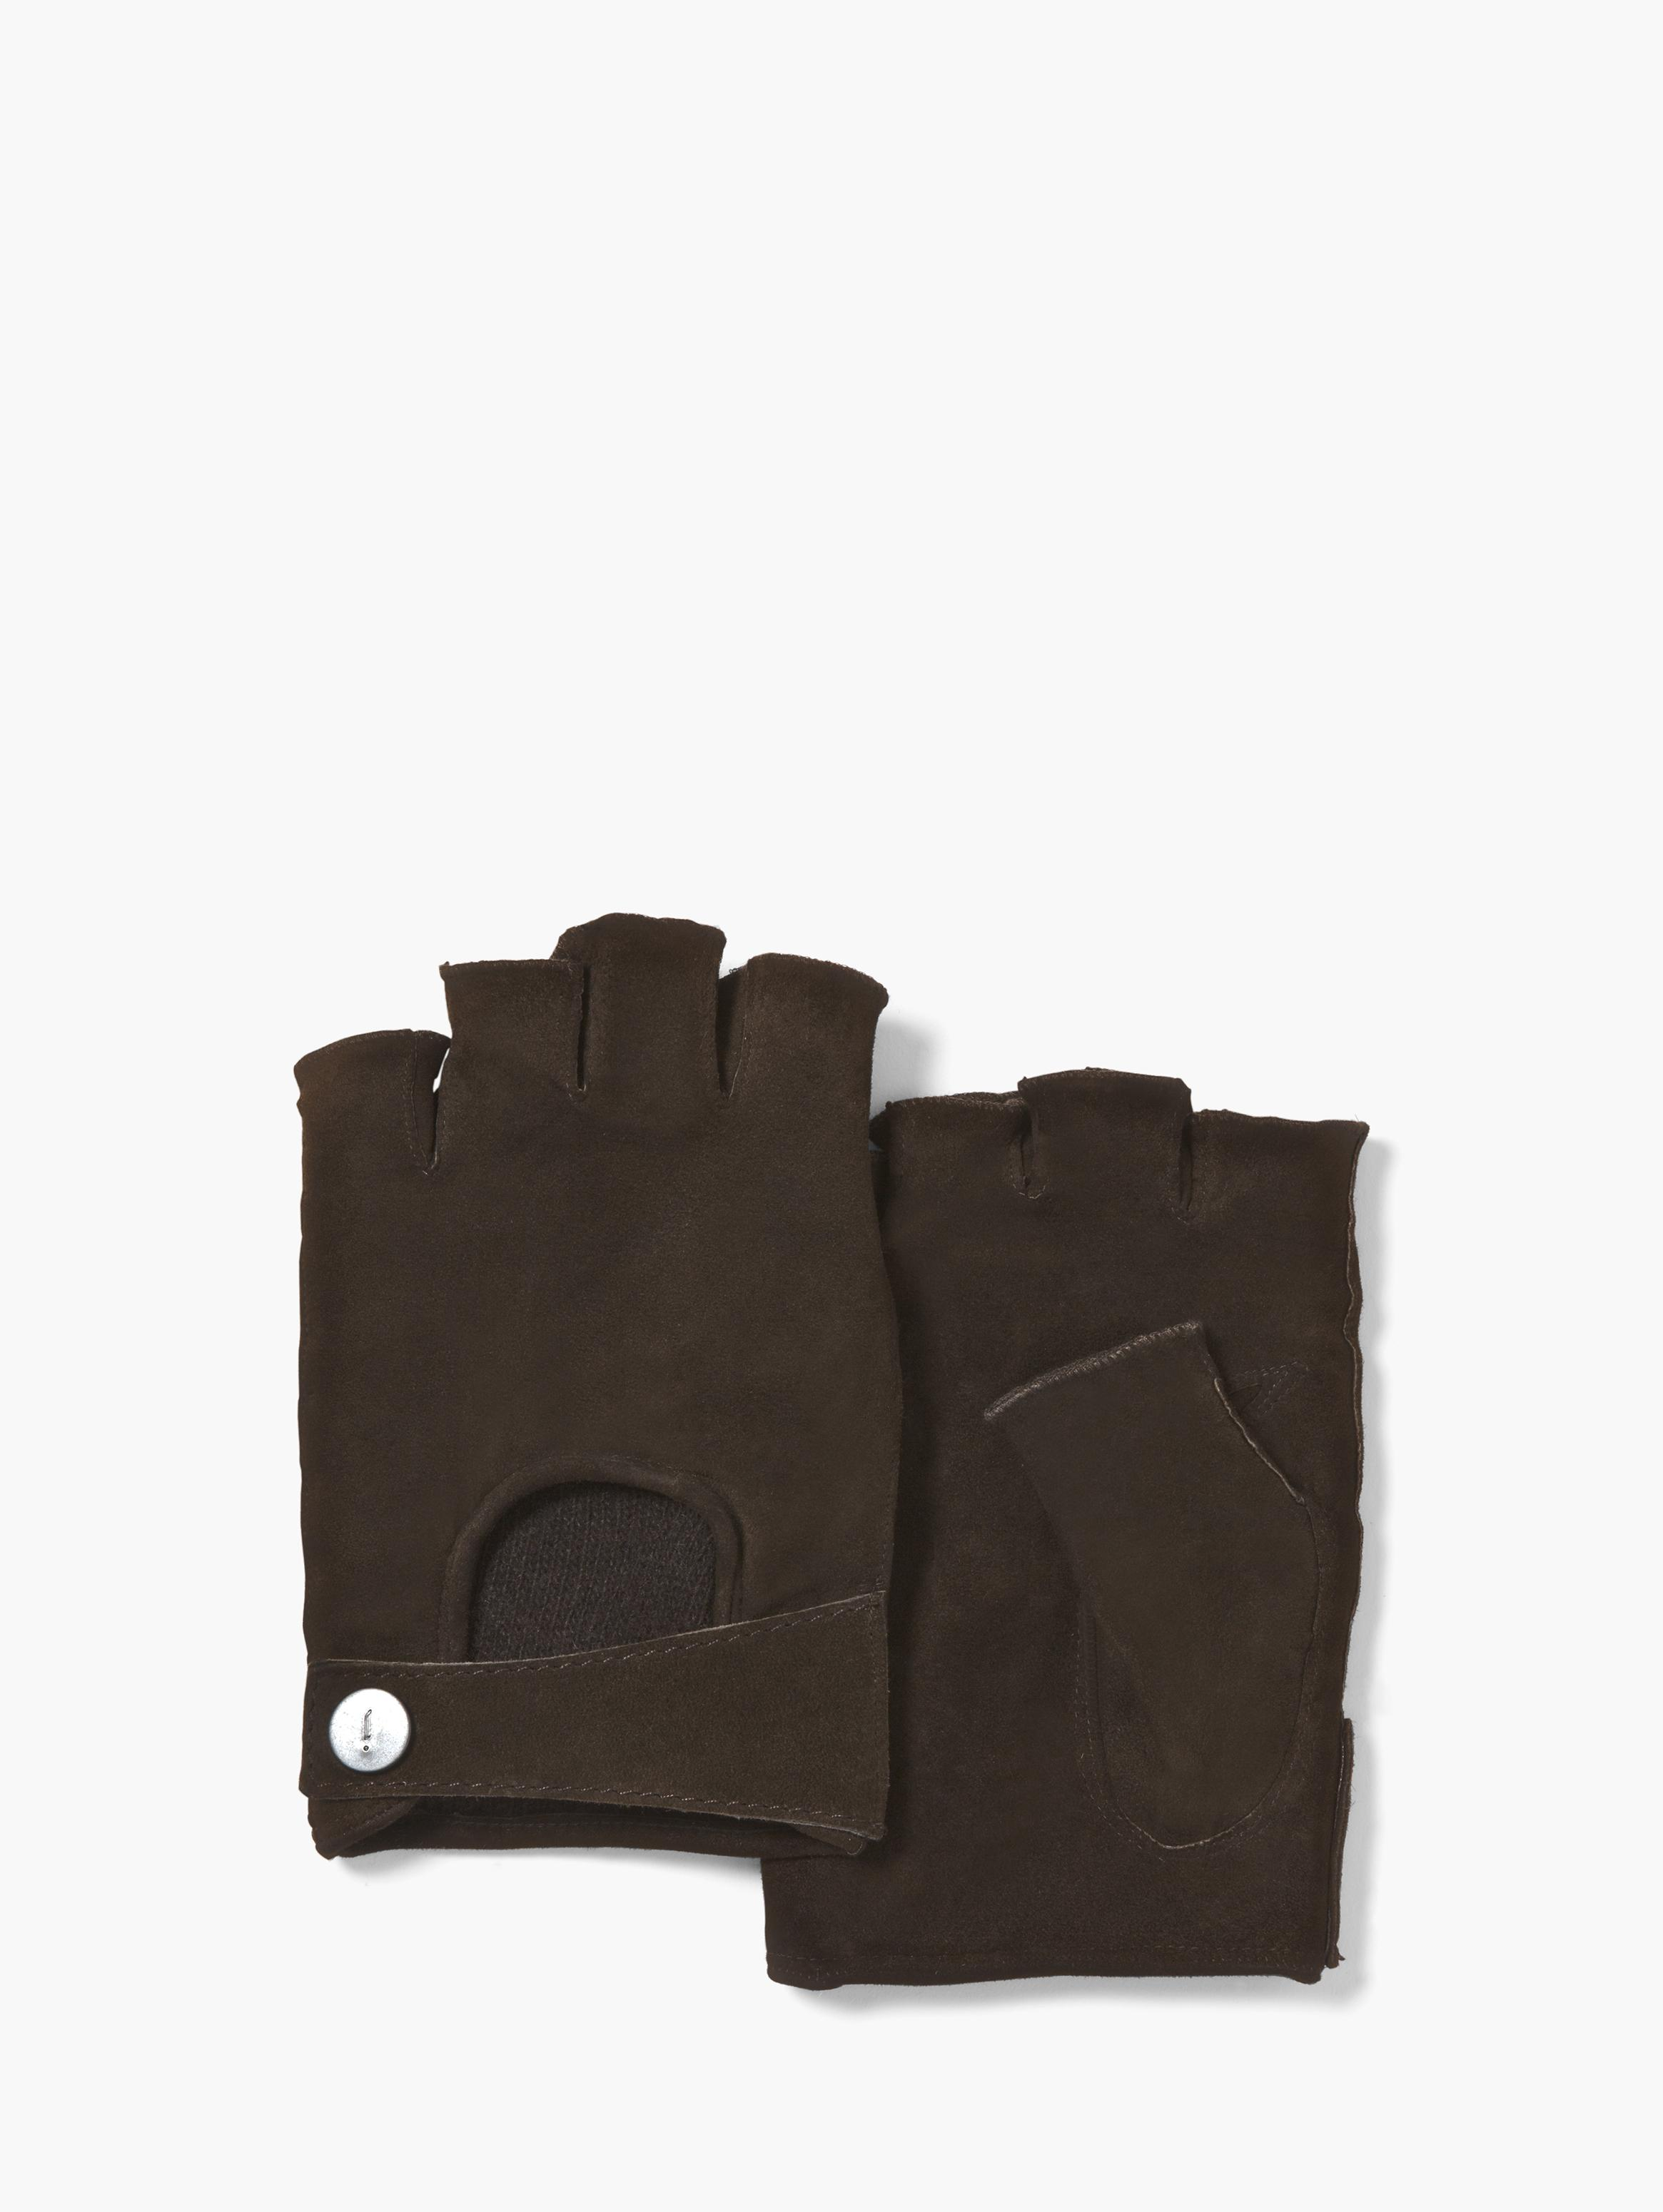 Fingerless Suede Driving Glove